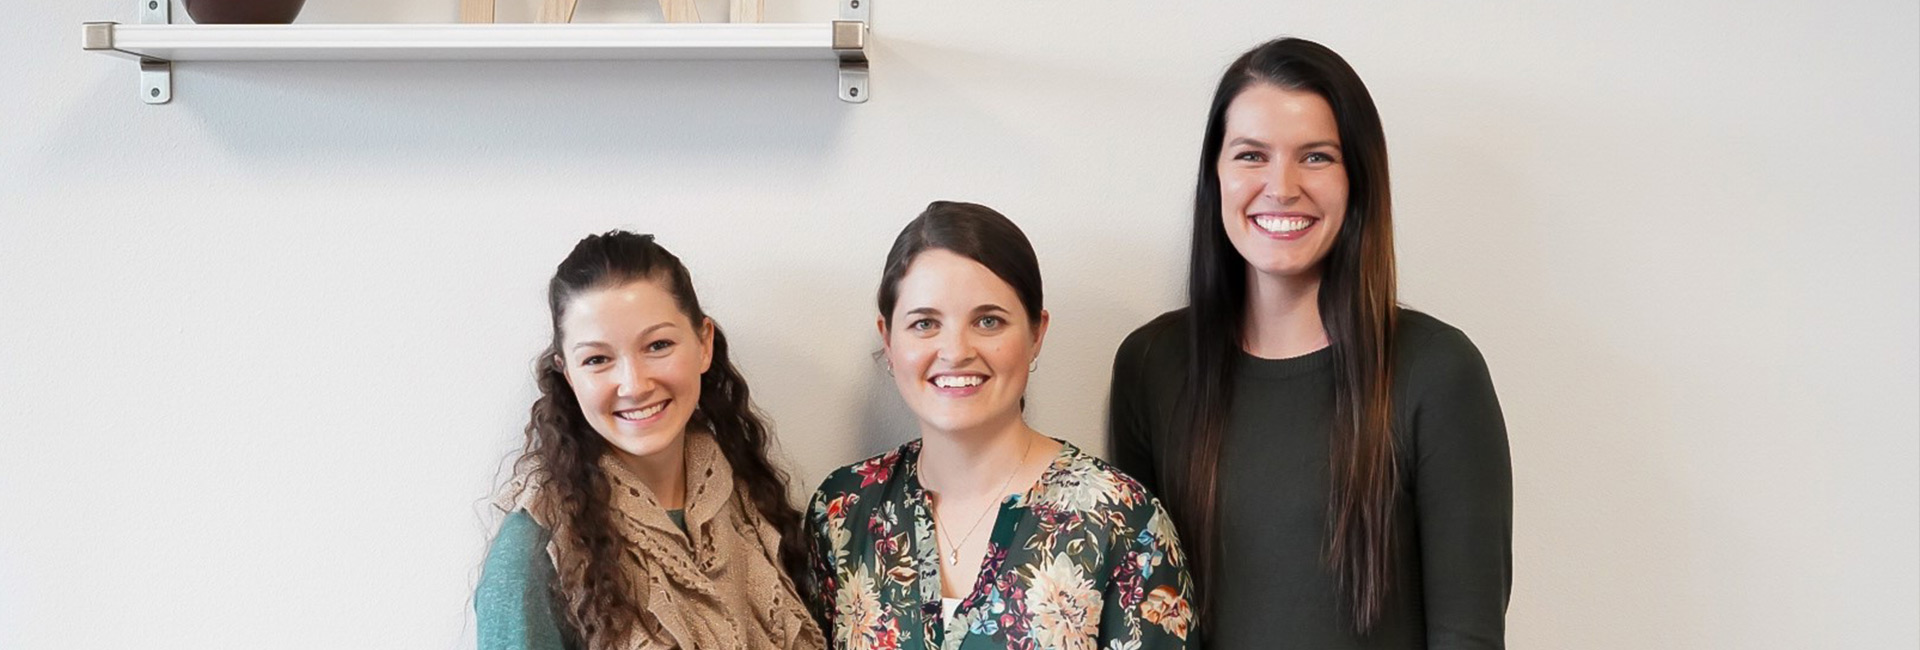 Therapeutic Associates Physical Therapy - Southeast Salem Team